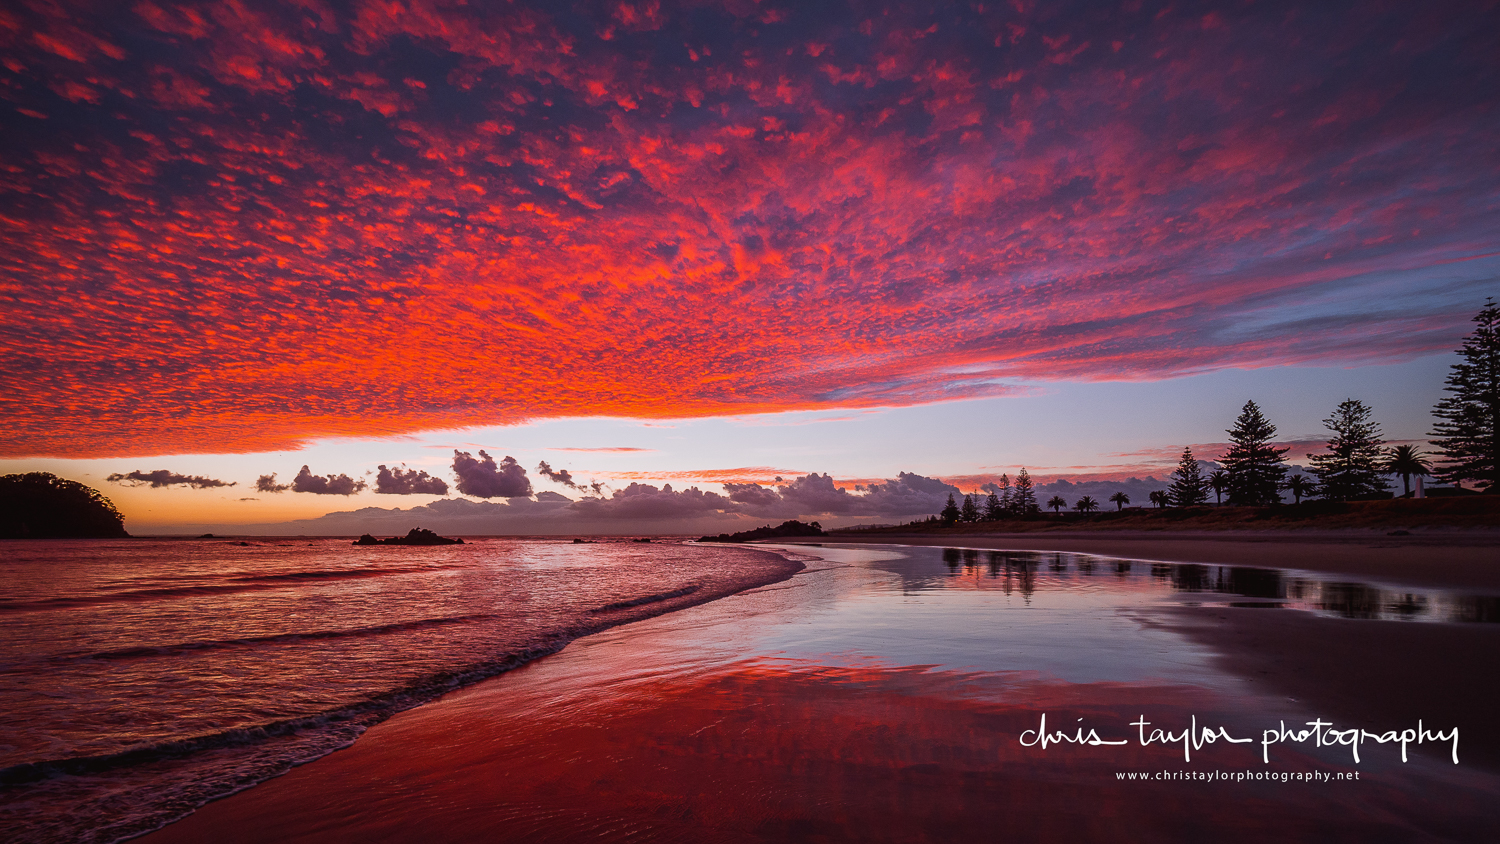 Fire in the sky. Mount Maunganui Beach. Olympus E-M1 MKII & 7-14mm f/2.8 lens. 1/60 sec @ f/5.6, ISO 250